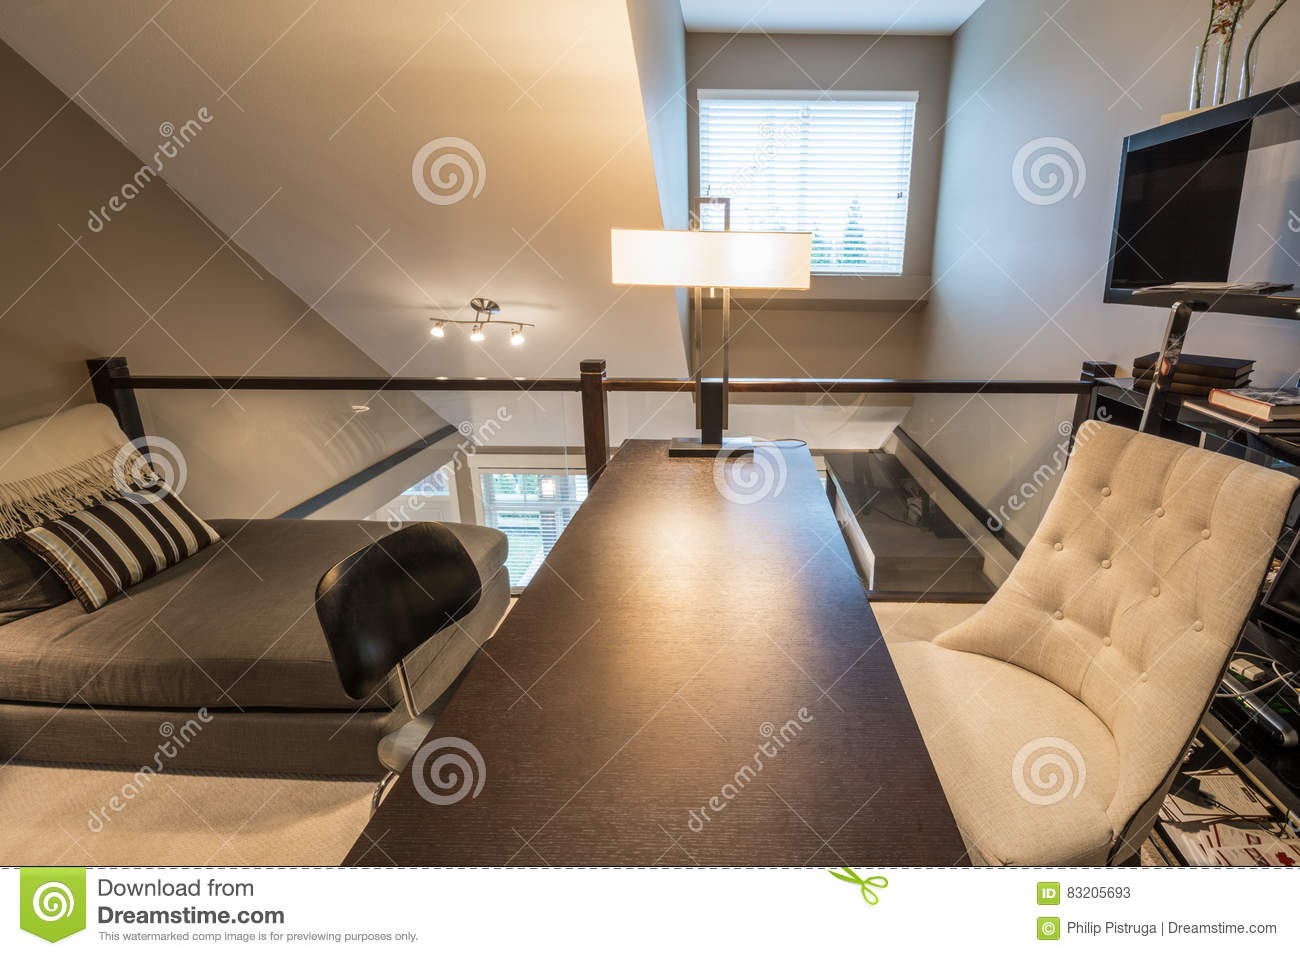 Cozy Home Office Interior Design Stock Image - Image of ...